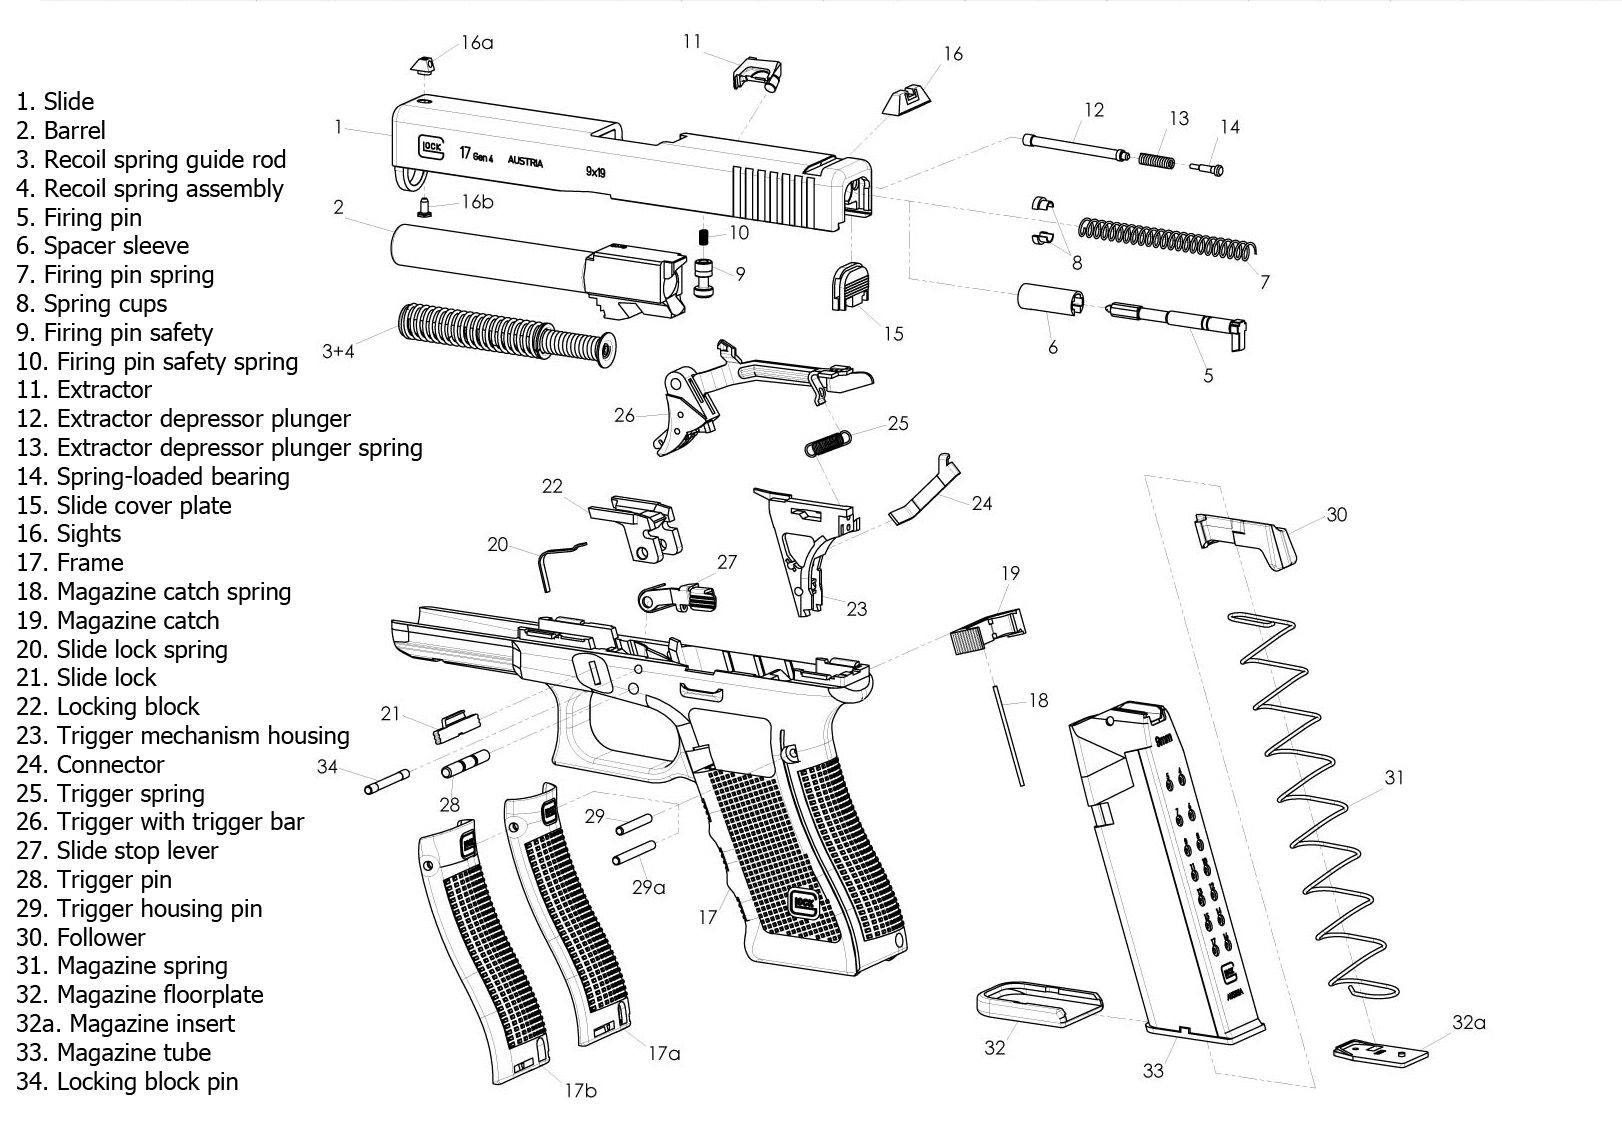 Glock 17 Generation 4 Exploded View Diagram